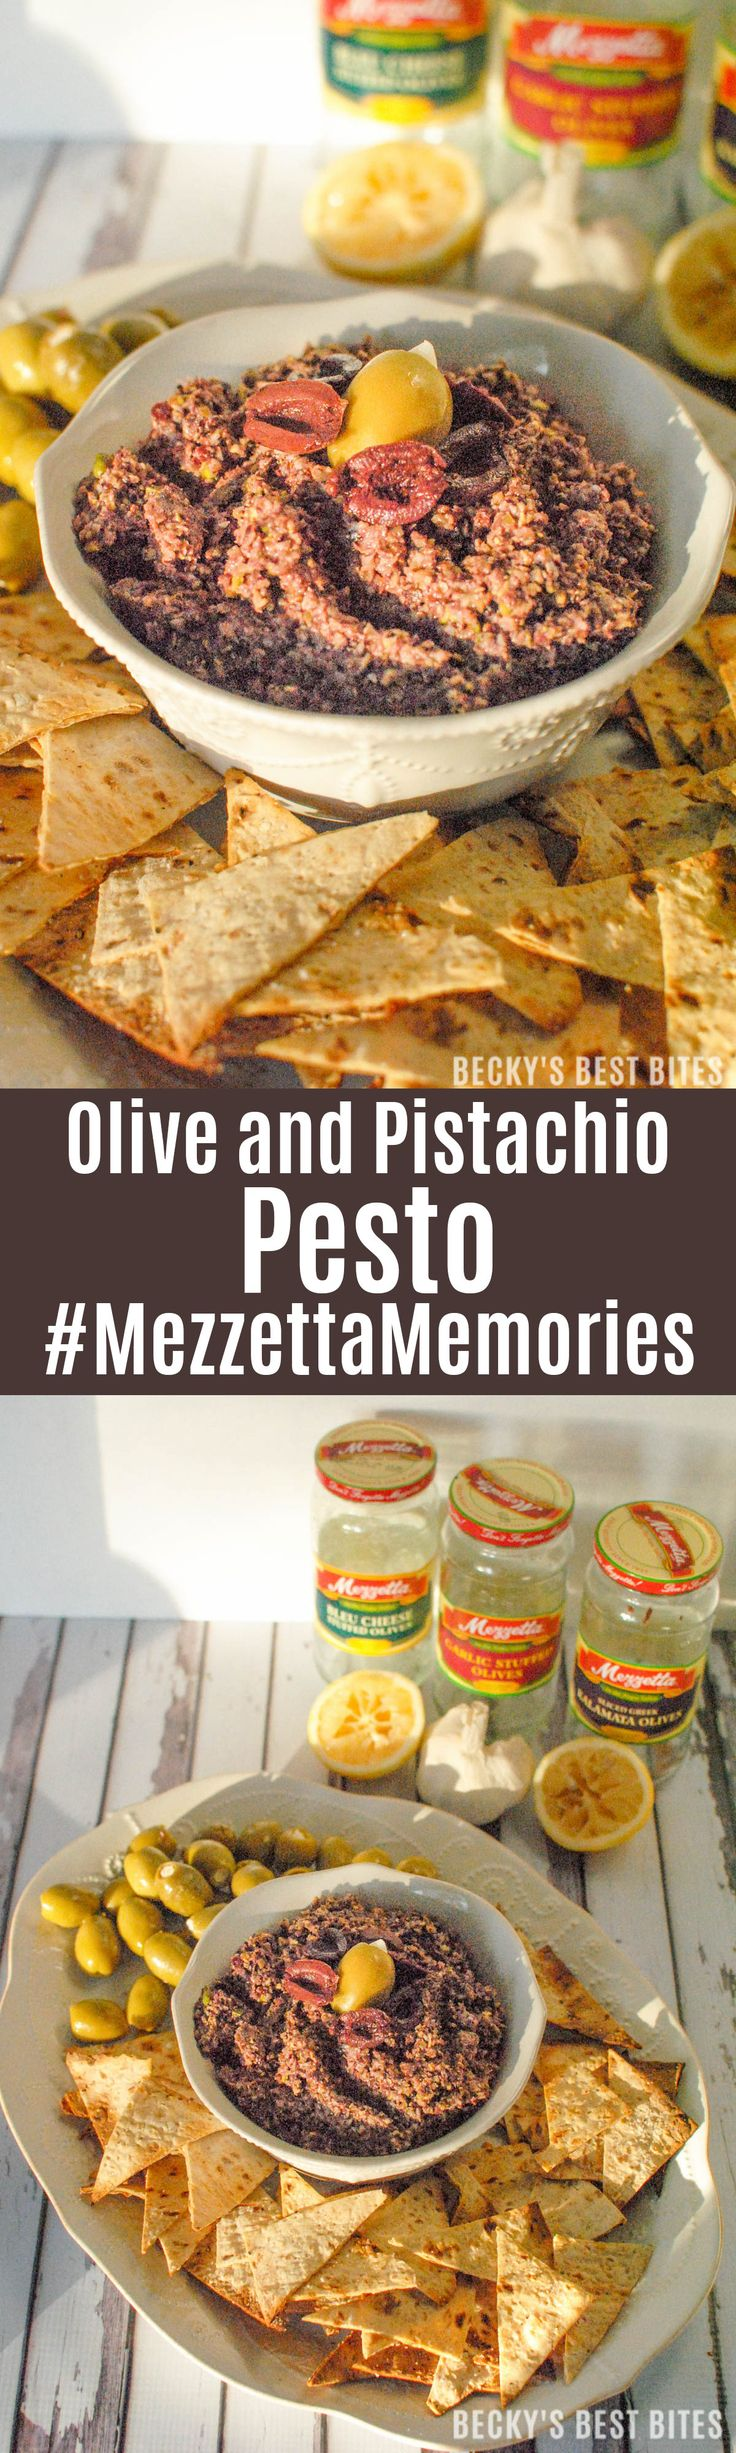 Mezzetta Olive and Pistachio Pesto is a holiday recipe that the whole family can enjoy! Win a holiday memories sharing pack. Easy Giveaway ~> https://ooh.li/589f409 #MezzettaMemories #ad | beckysbestbites.com